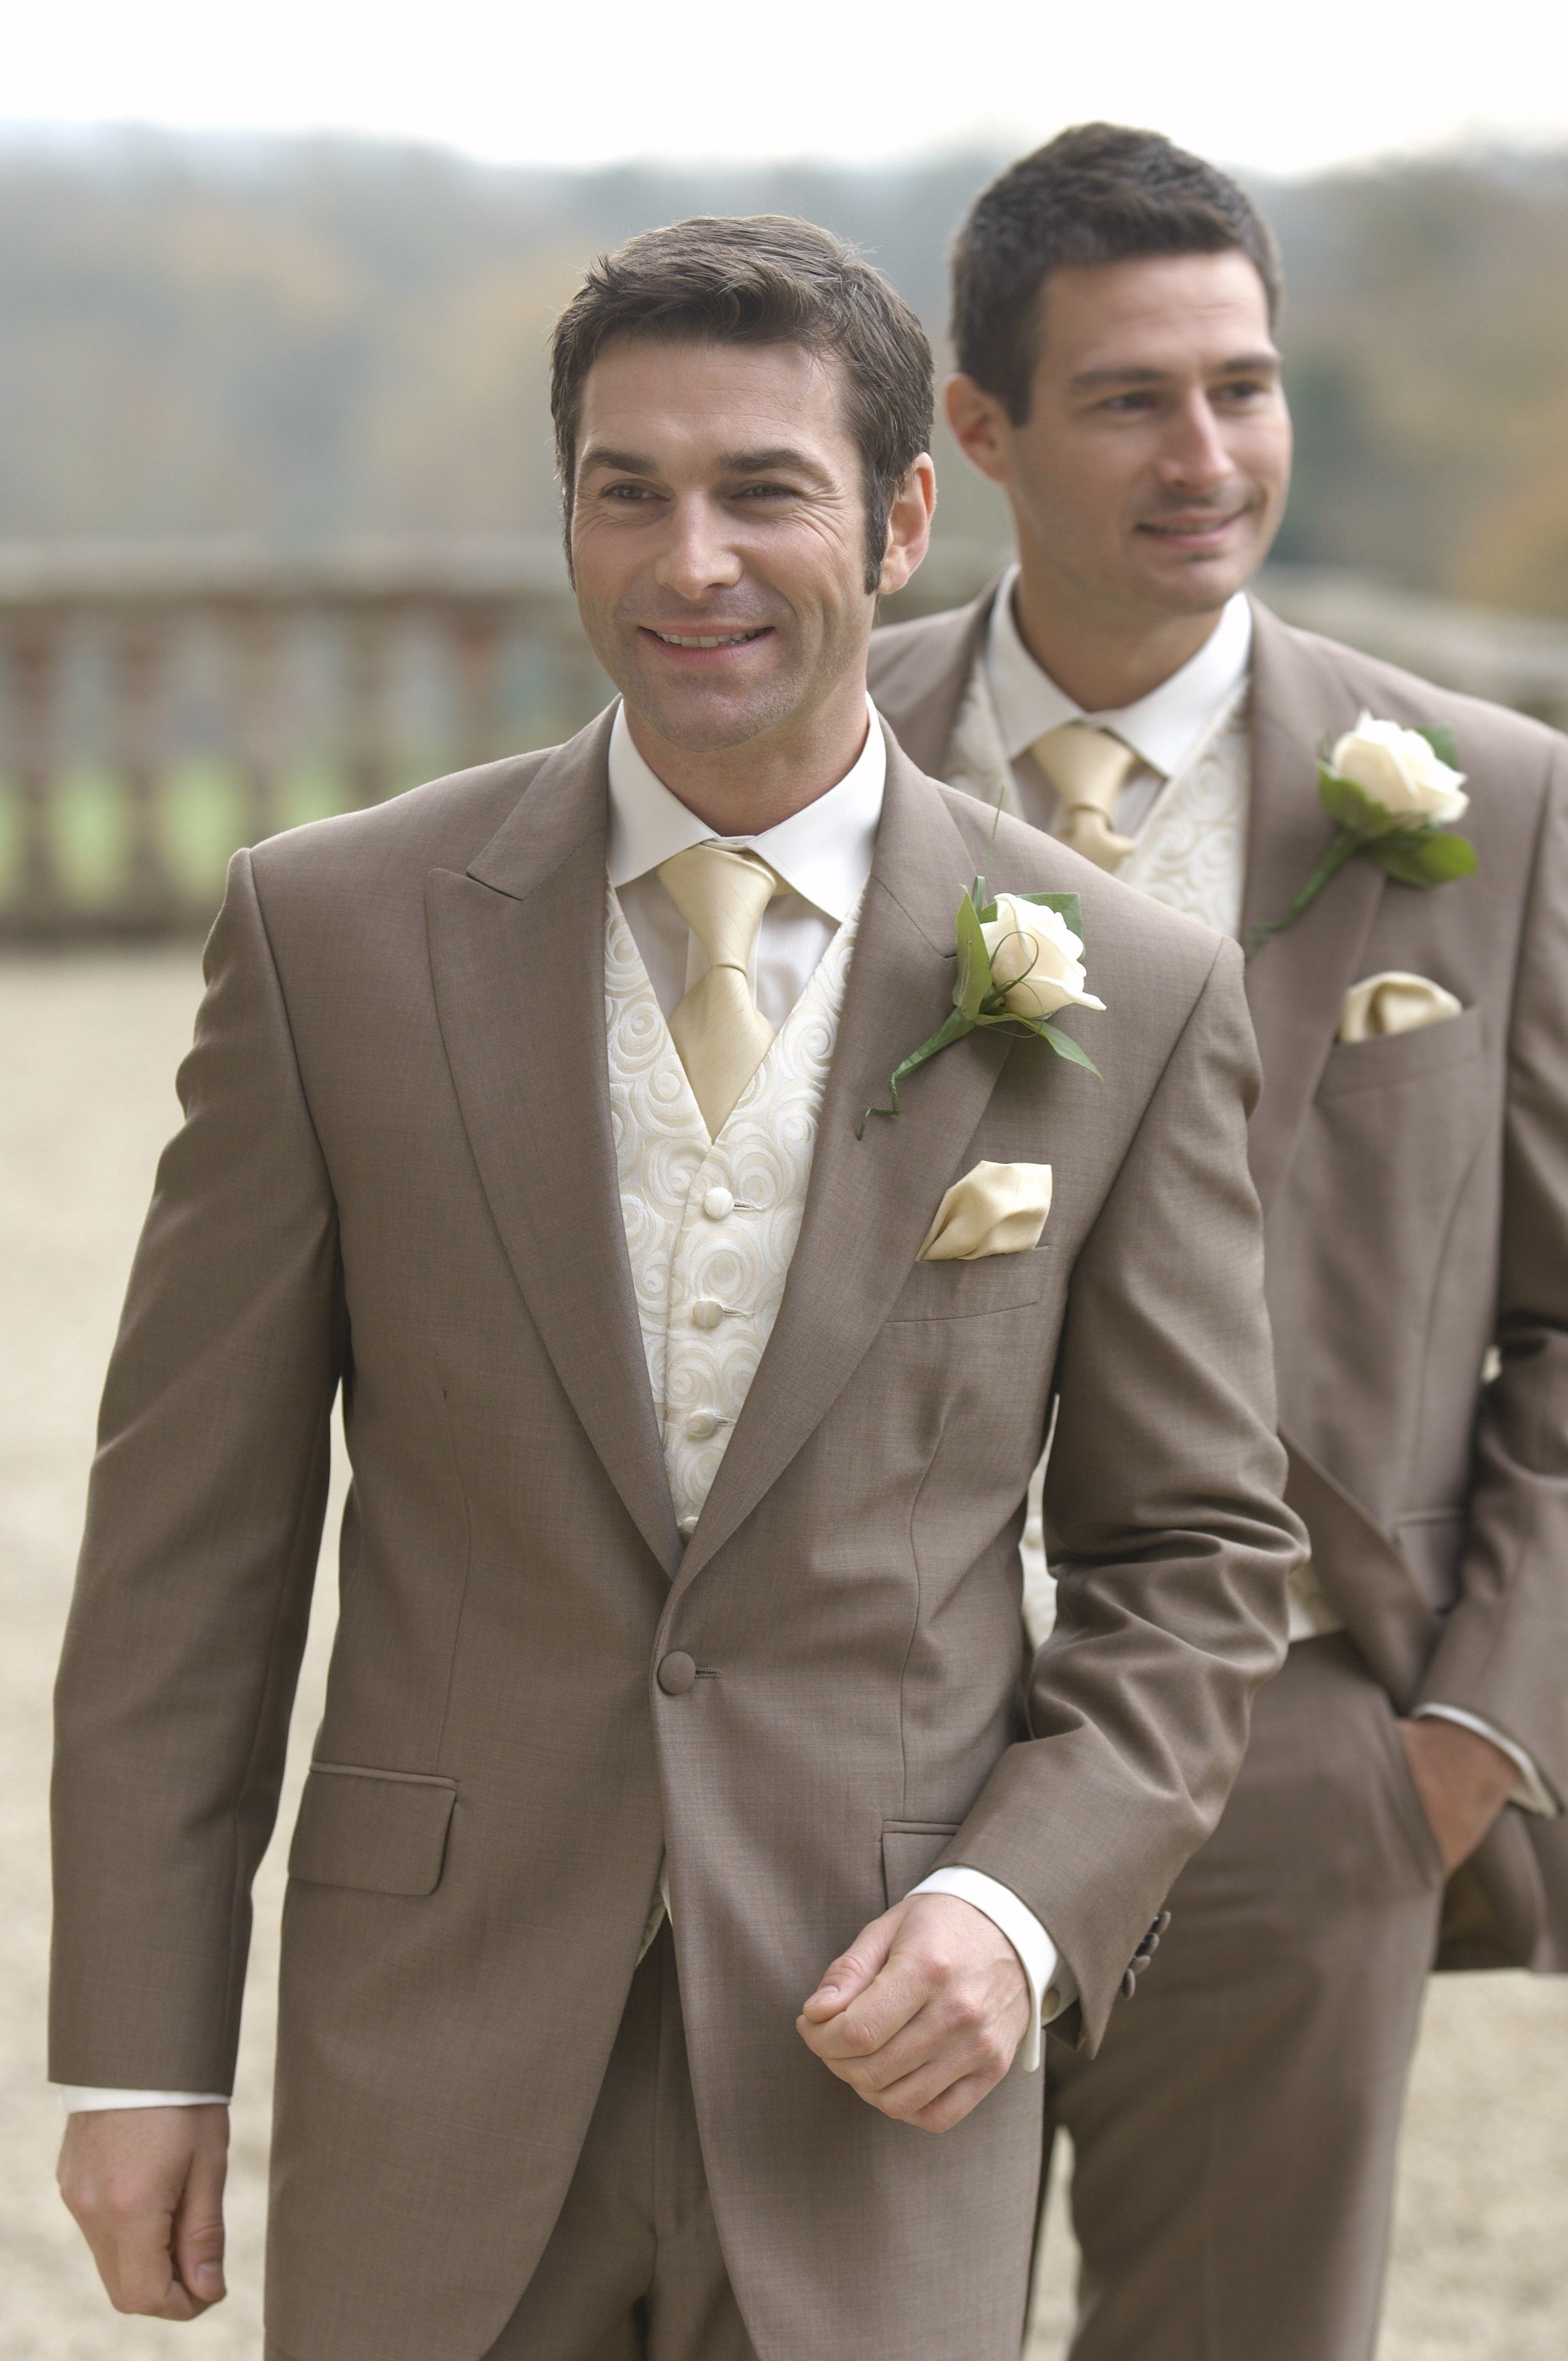 Love the jacket color for the dads:) | I dos | Pinterest | Wedding ...